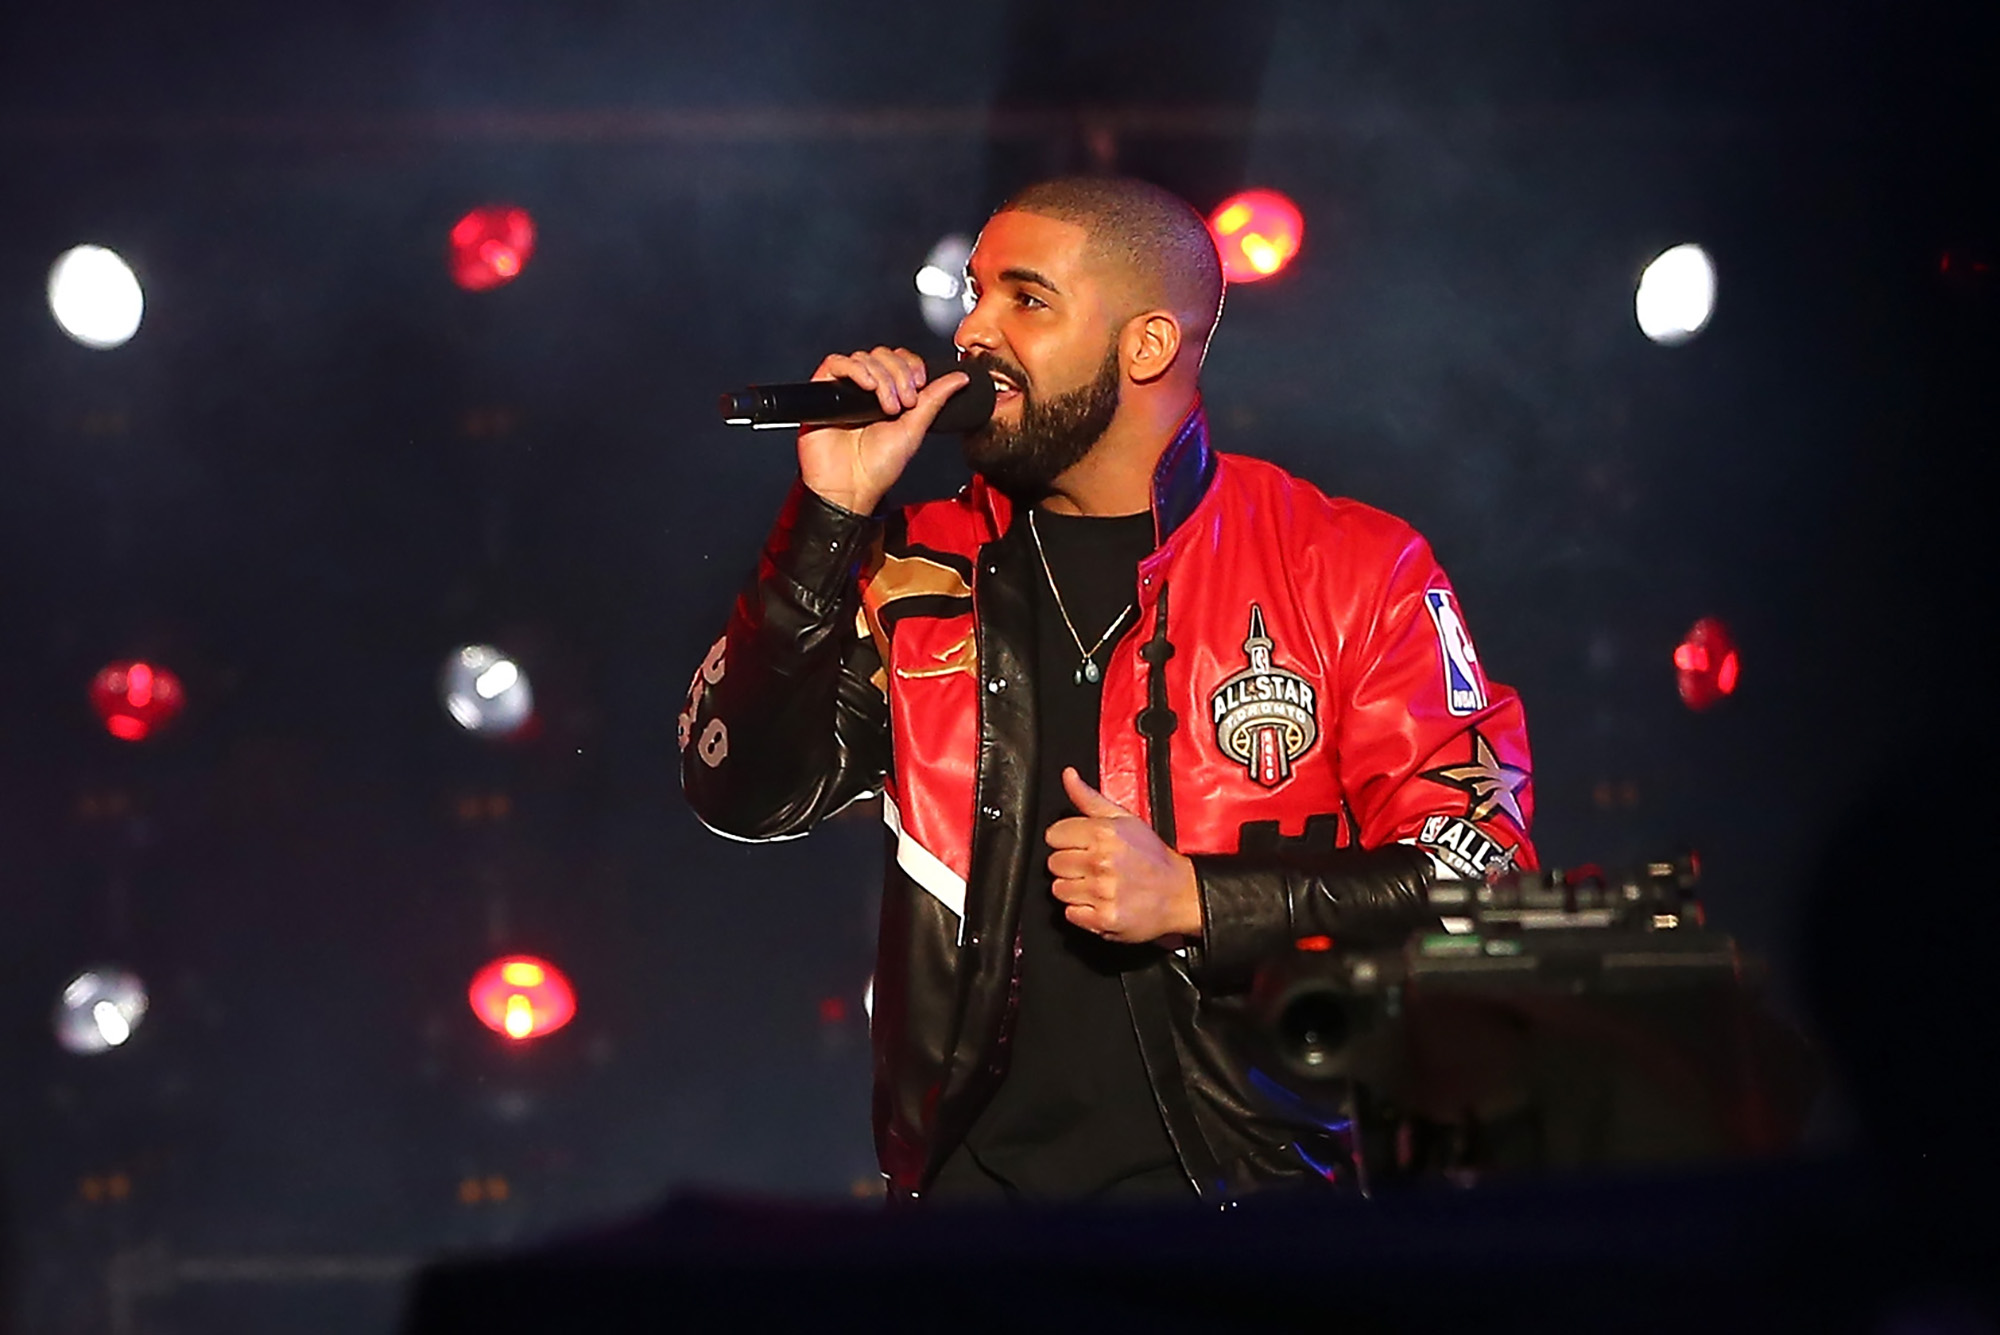 TORONTO, ON - FEBRUARY 14: Rapper Drake at the NBA All-Star Game 2016 at the Air Canada Centre on February 14, 2016 in Toronto, Ontario. NOTE TO USER: User expressly acknowledges and agrees that, by downloading and/or using this Photograph, user is consenting to the terms and conditions of the Getty Images License Agreement.  (Photo by Elsa/Getty Images)